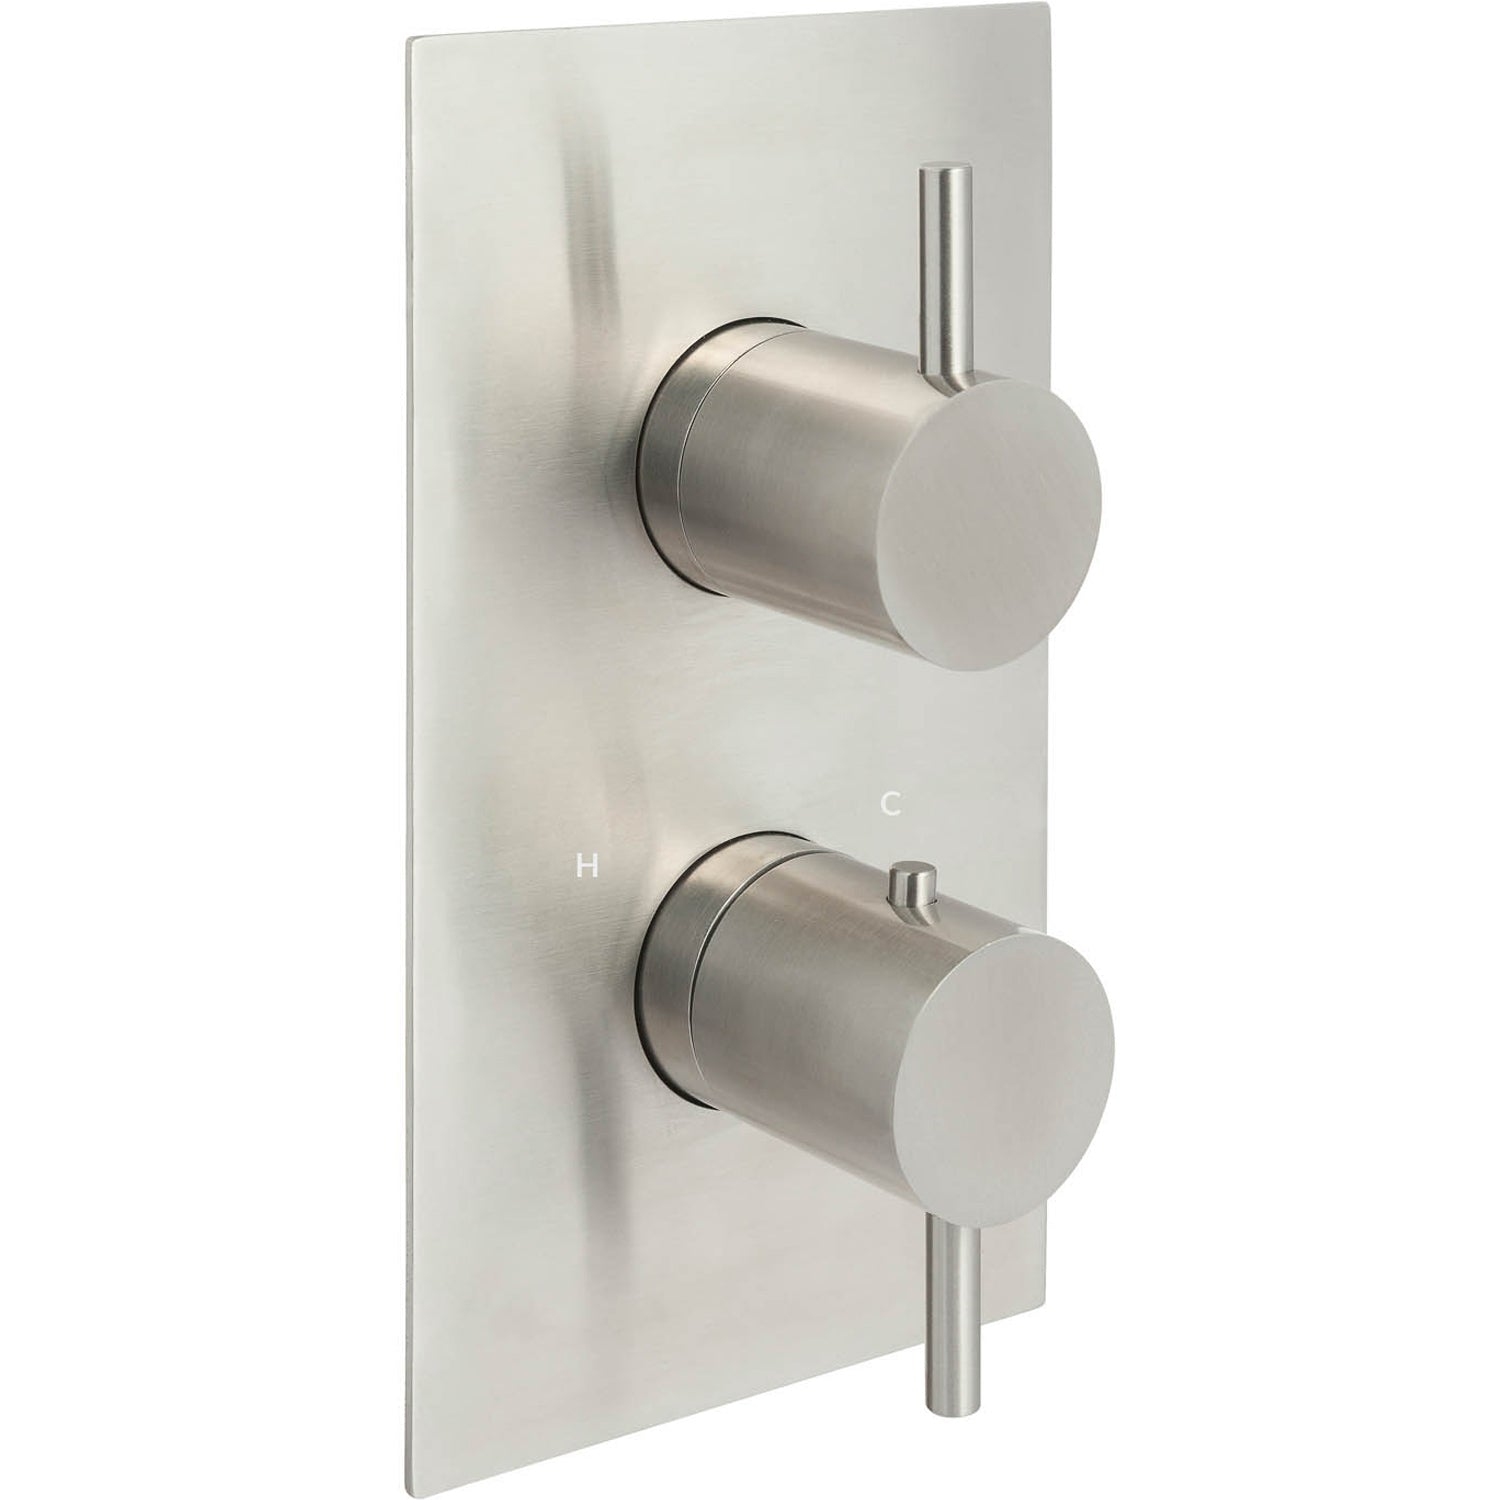 Single outlet Libero Concealed Shower Valve with a satin steel finish on a white background